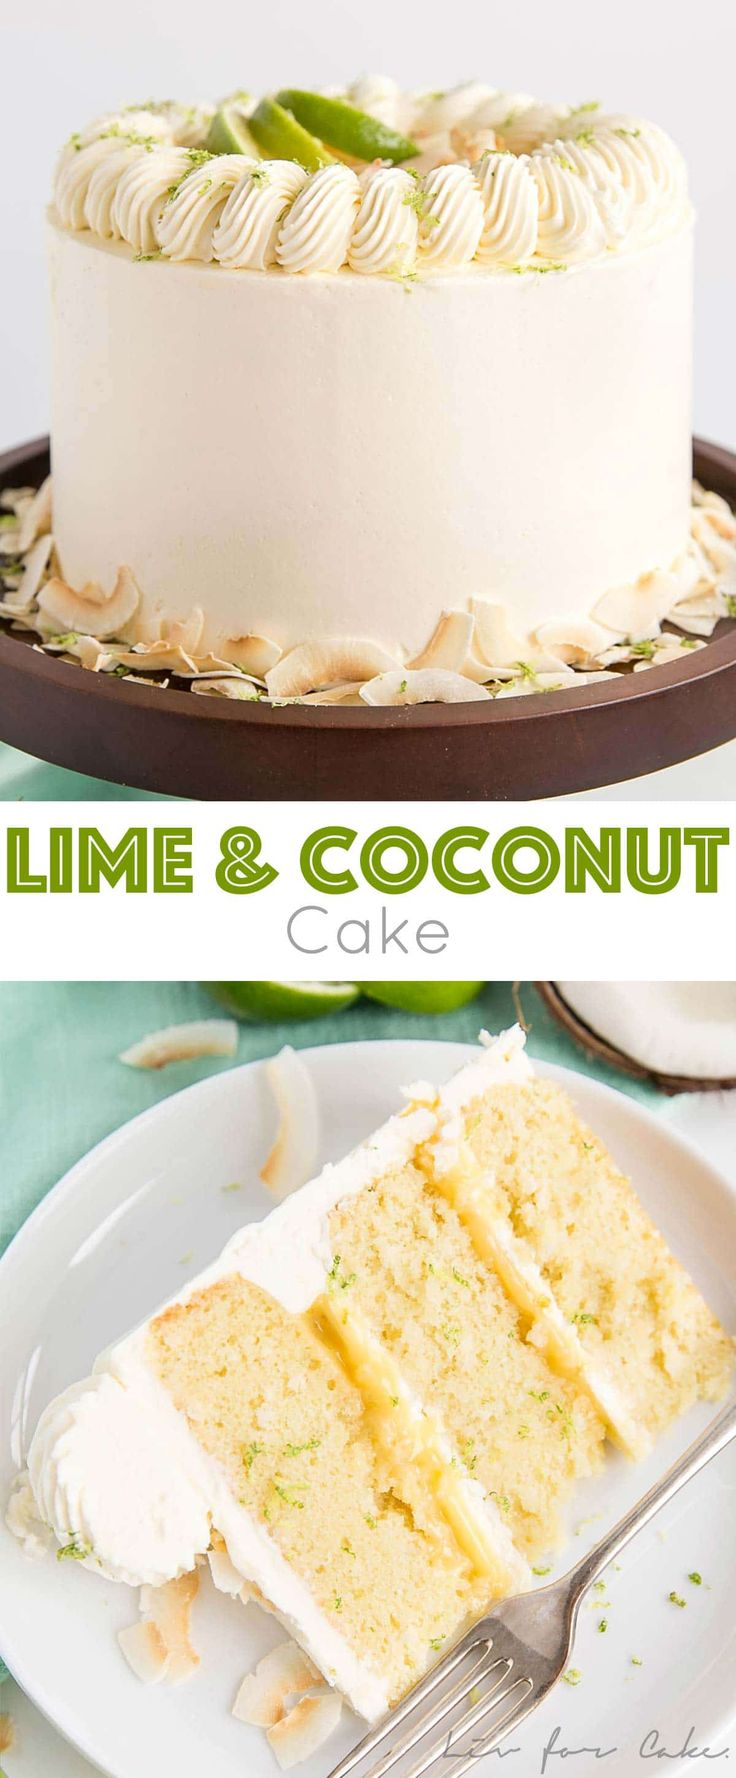 This Lime & Coconut Cake evokes the very best of t…